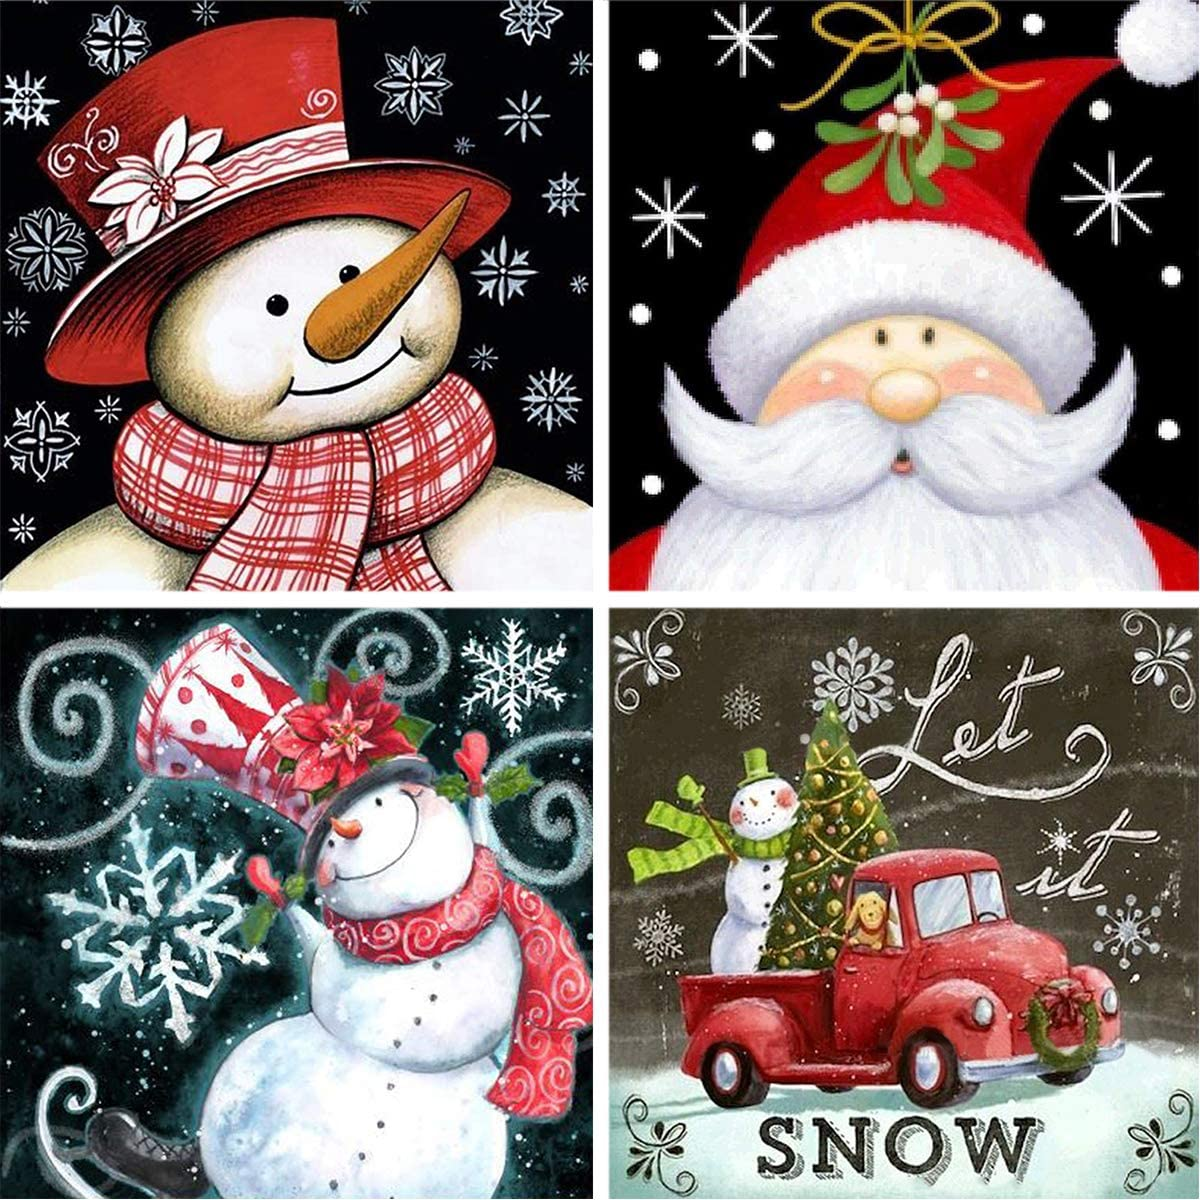 BeAhity 4 Pack Christmas DIY Diamond Painting by Number Kit,Full Drill Xmas Rhinestone Cross Stitch Painting Decor Pictures Craft for Christmas Holiday Home Decoration,9.8x9.8 Inches